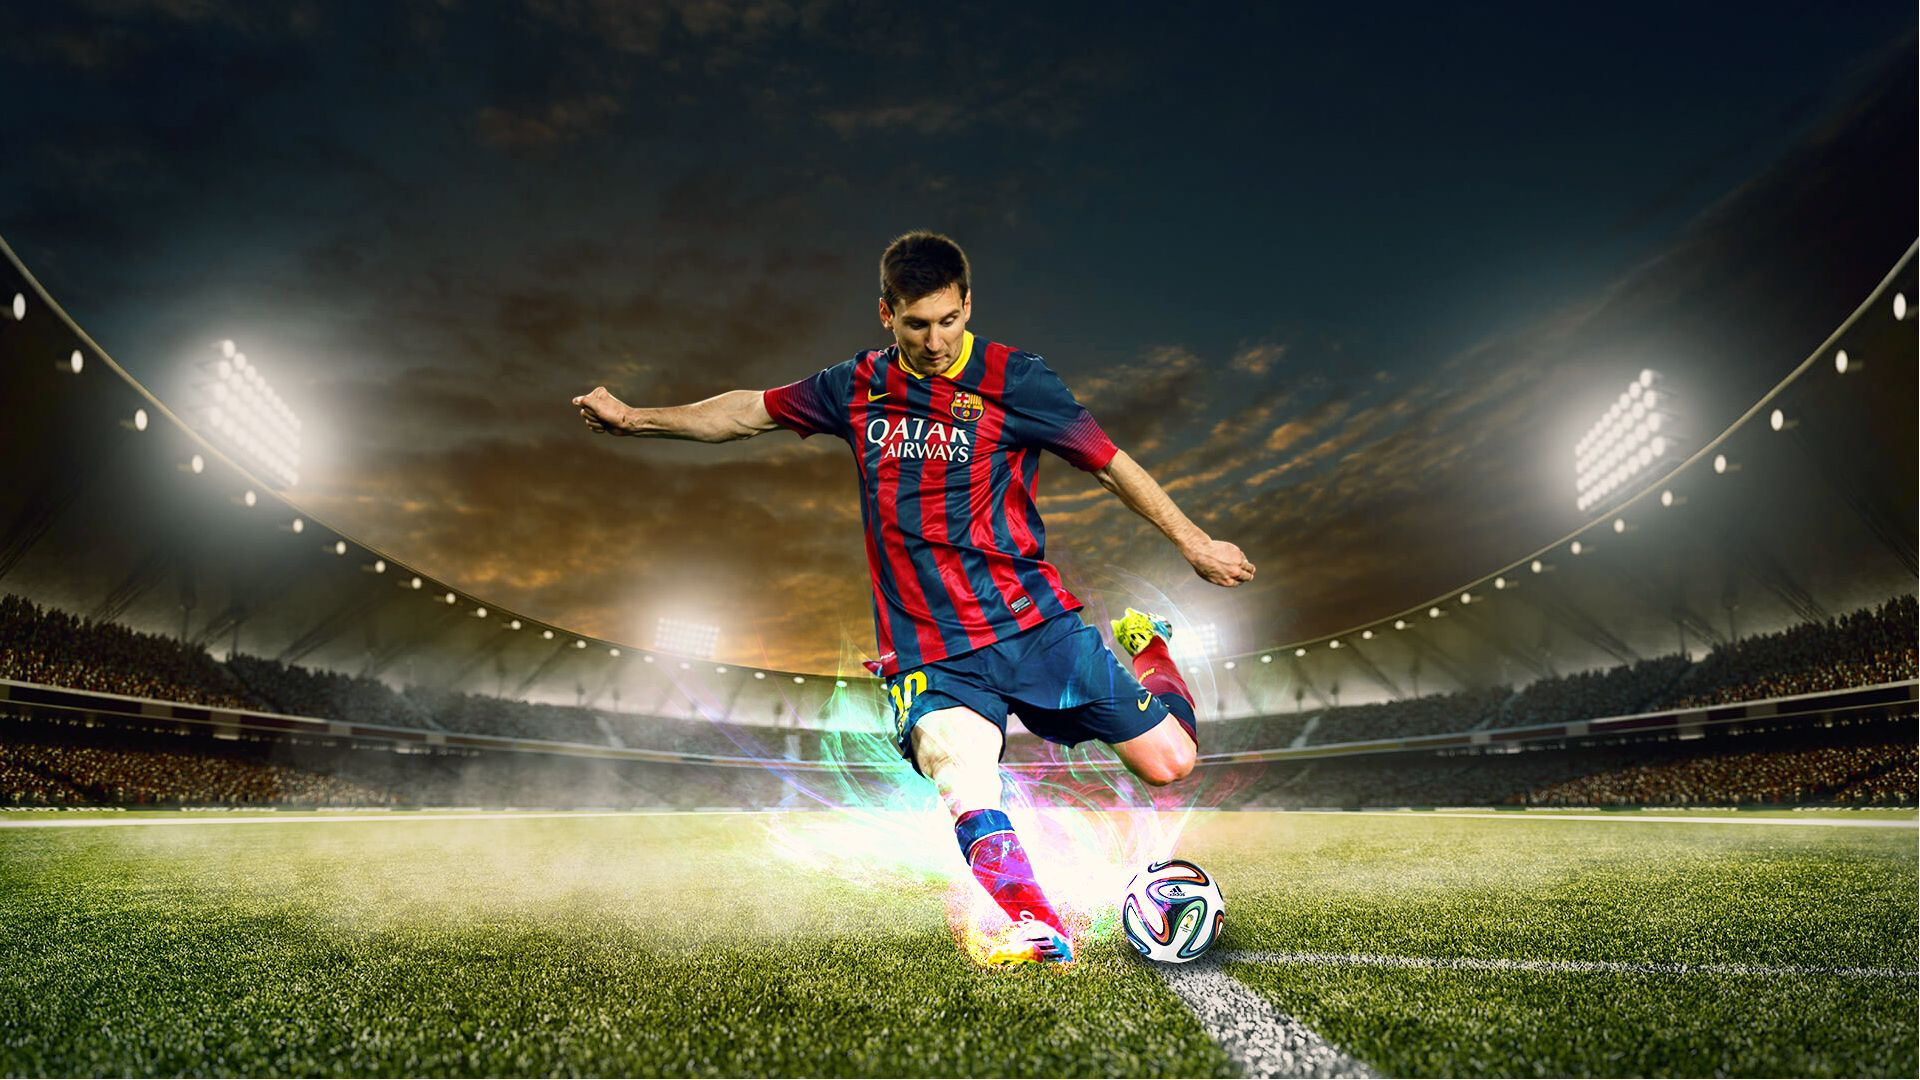 Get the best possiblity to option on UFABET